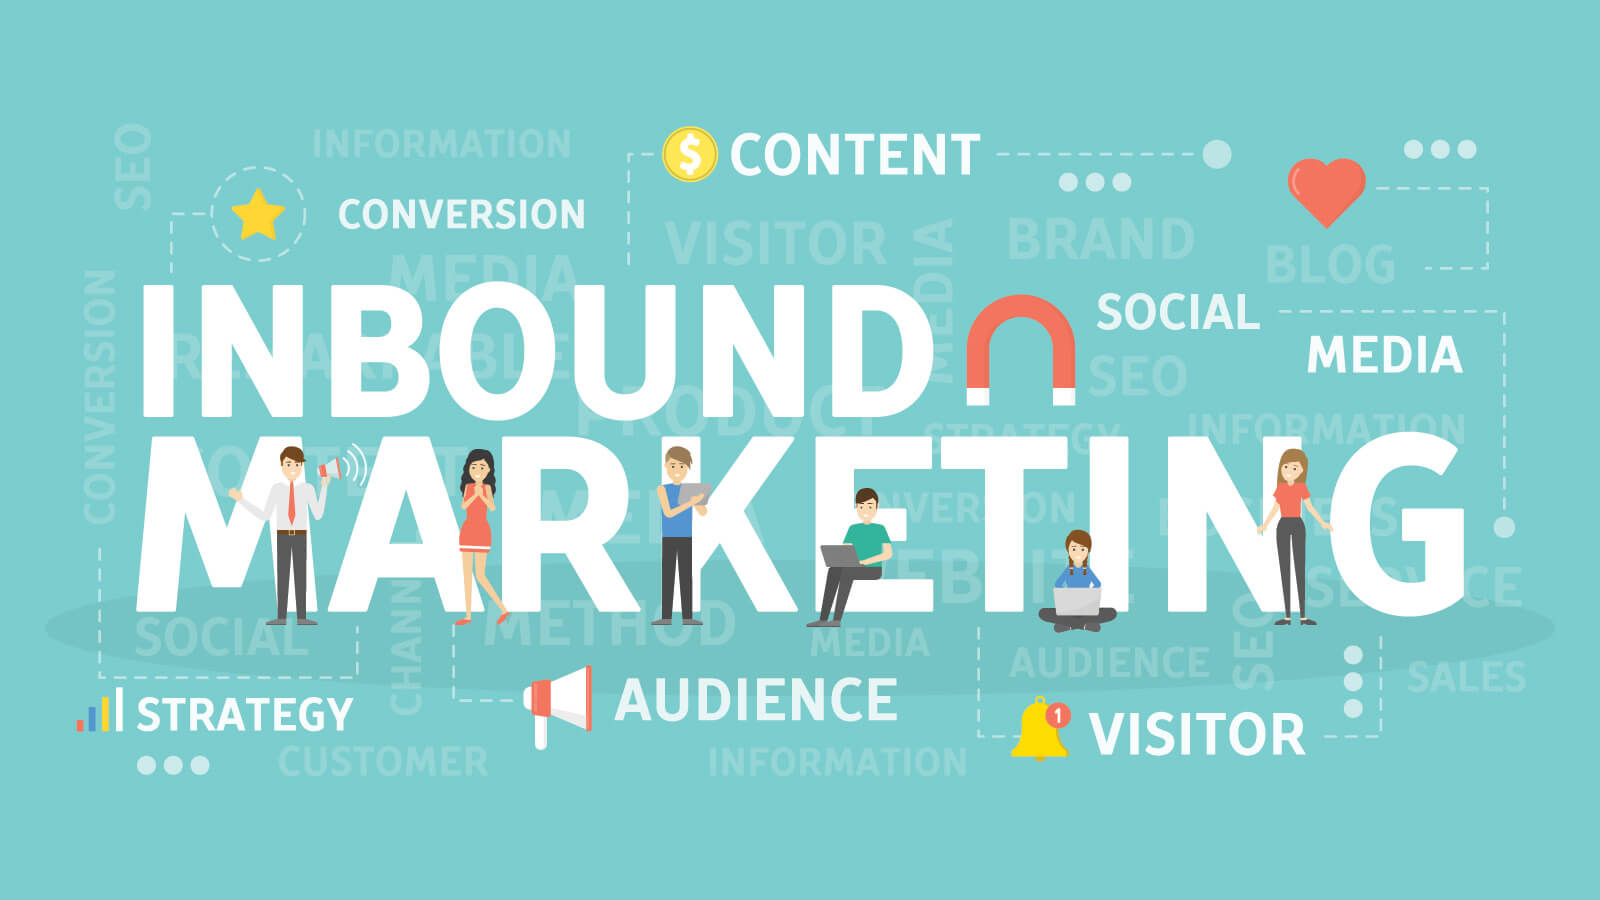 Web Design For Inbound Marketing